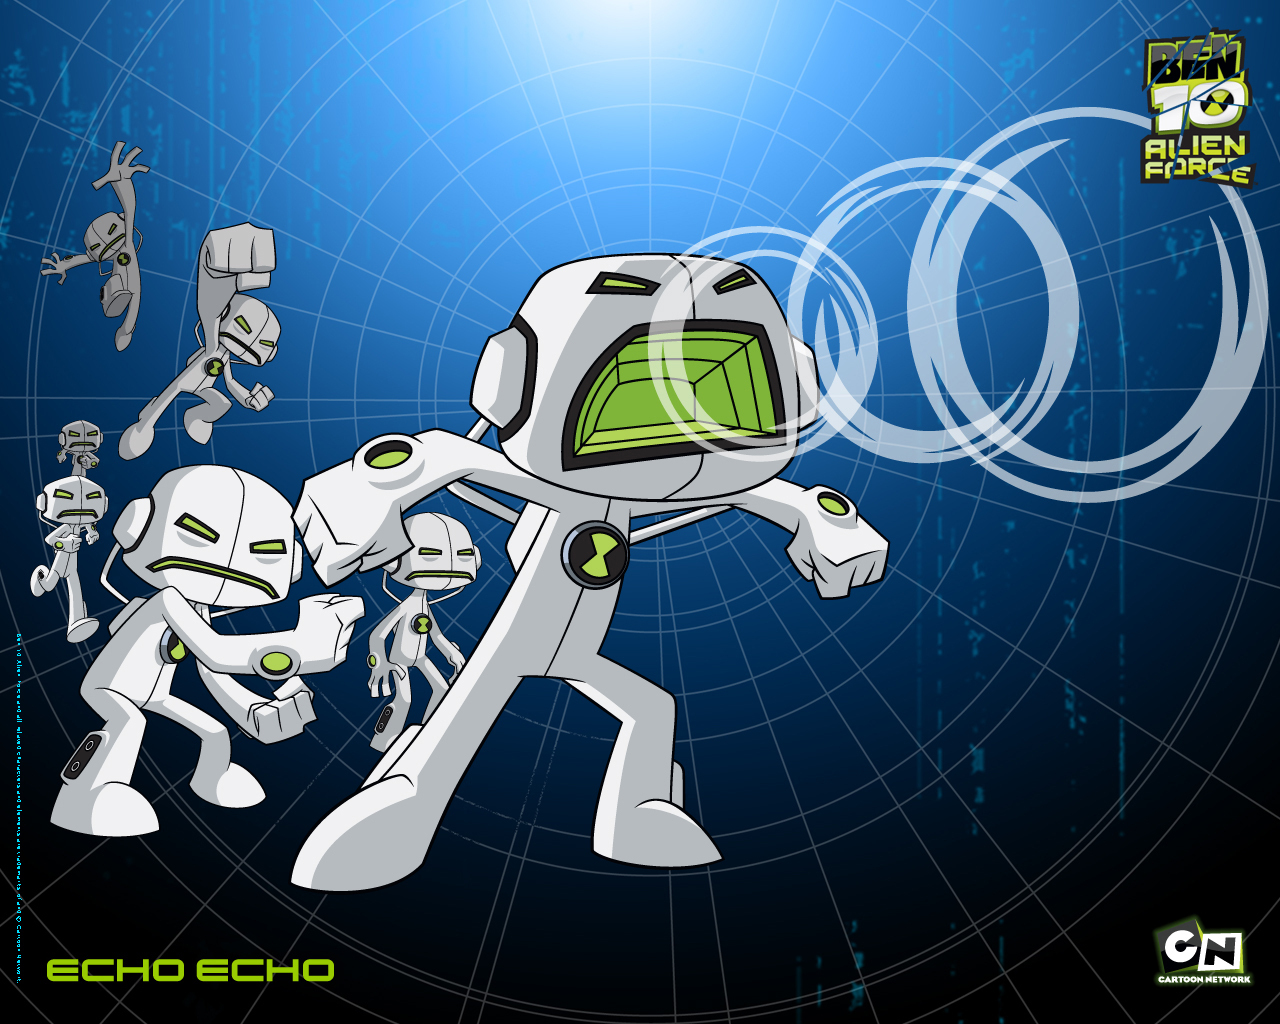 Ben 10 Alien Force Echo Echo 2